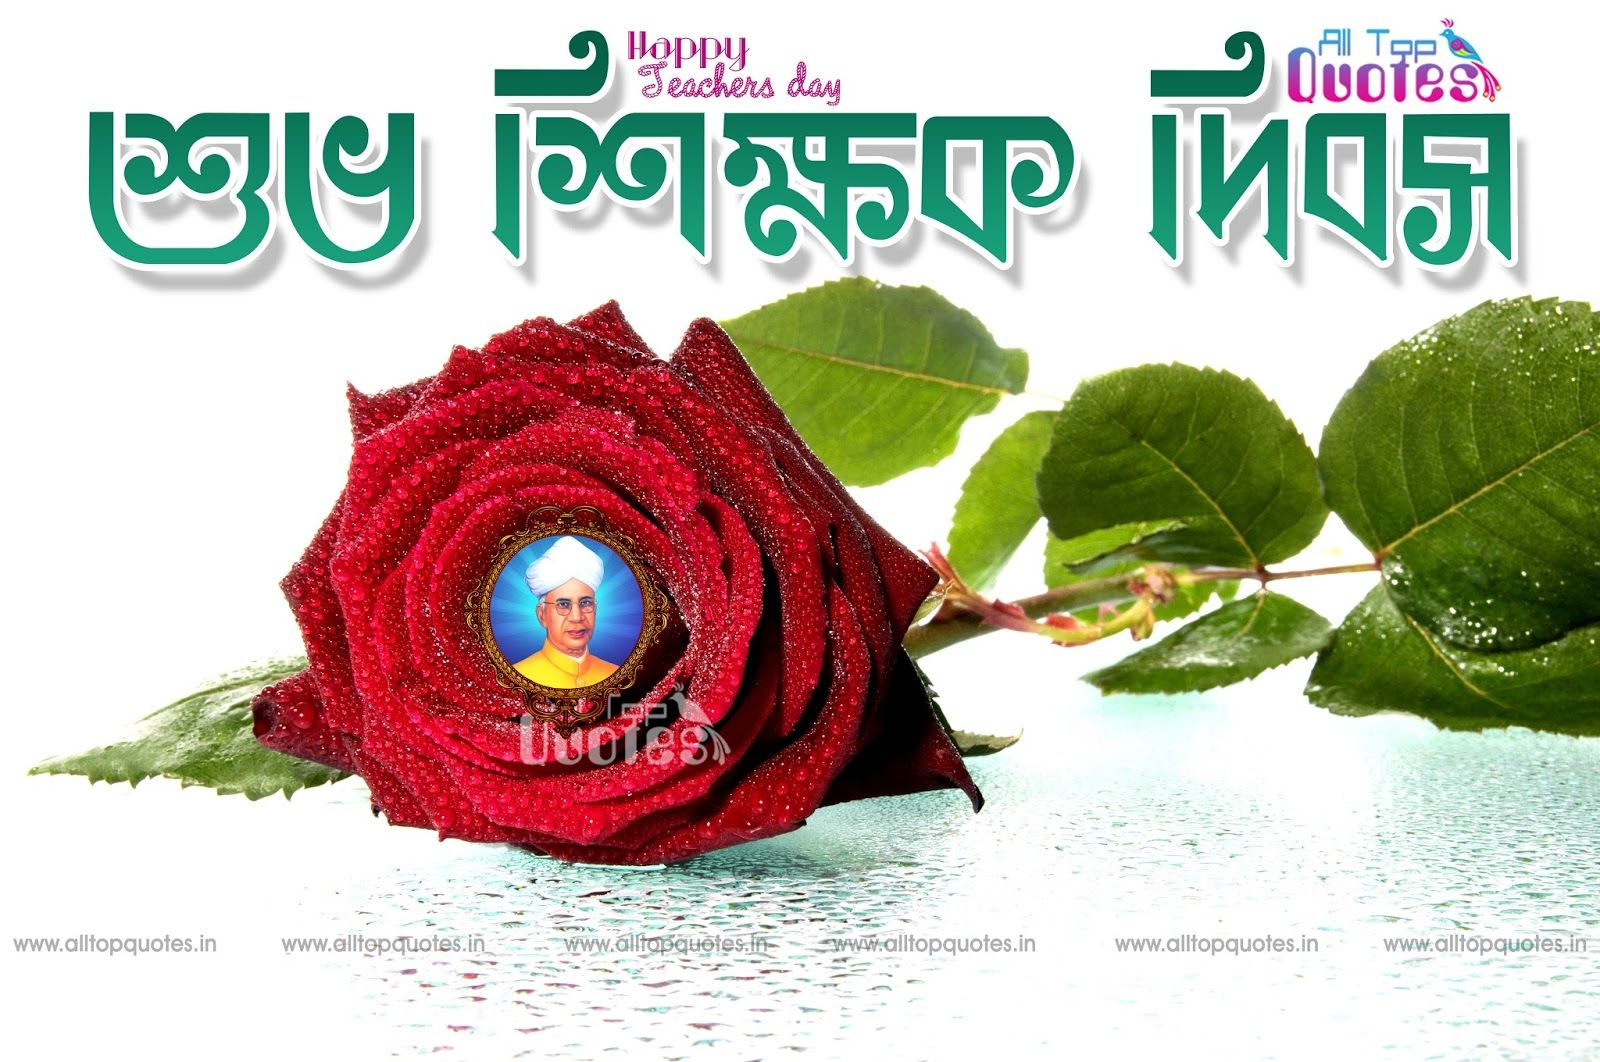 beautyful happy teachers day bengali quotes and greetings